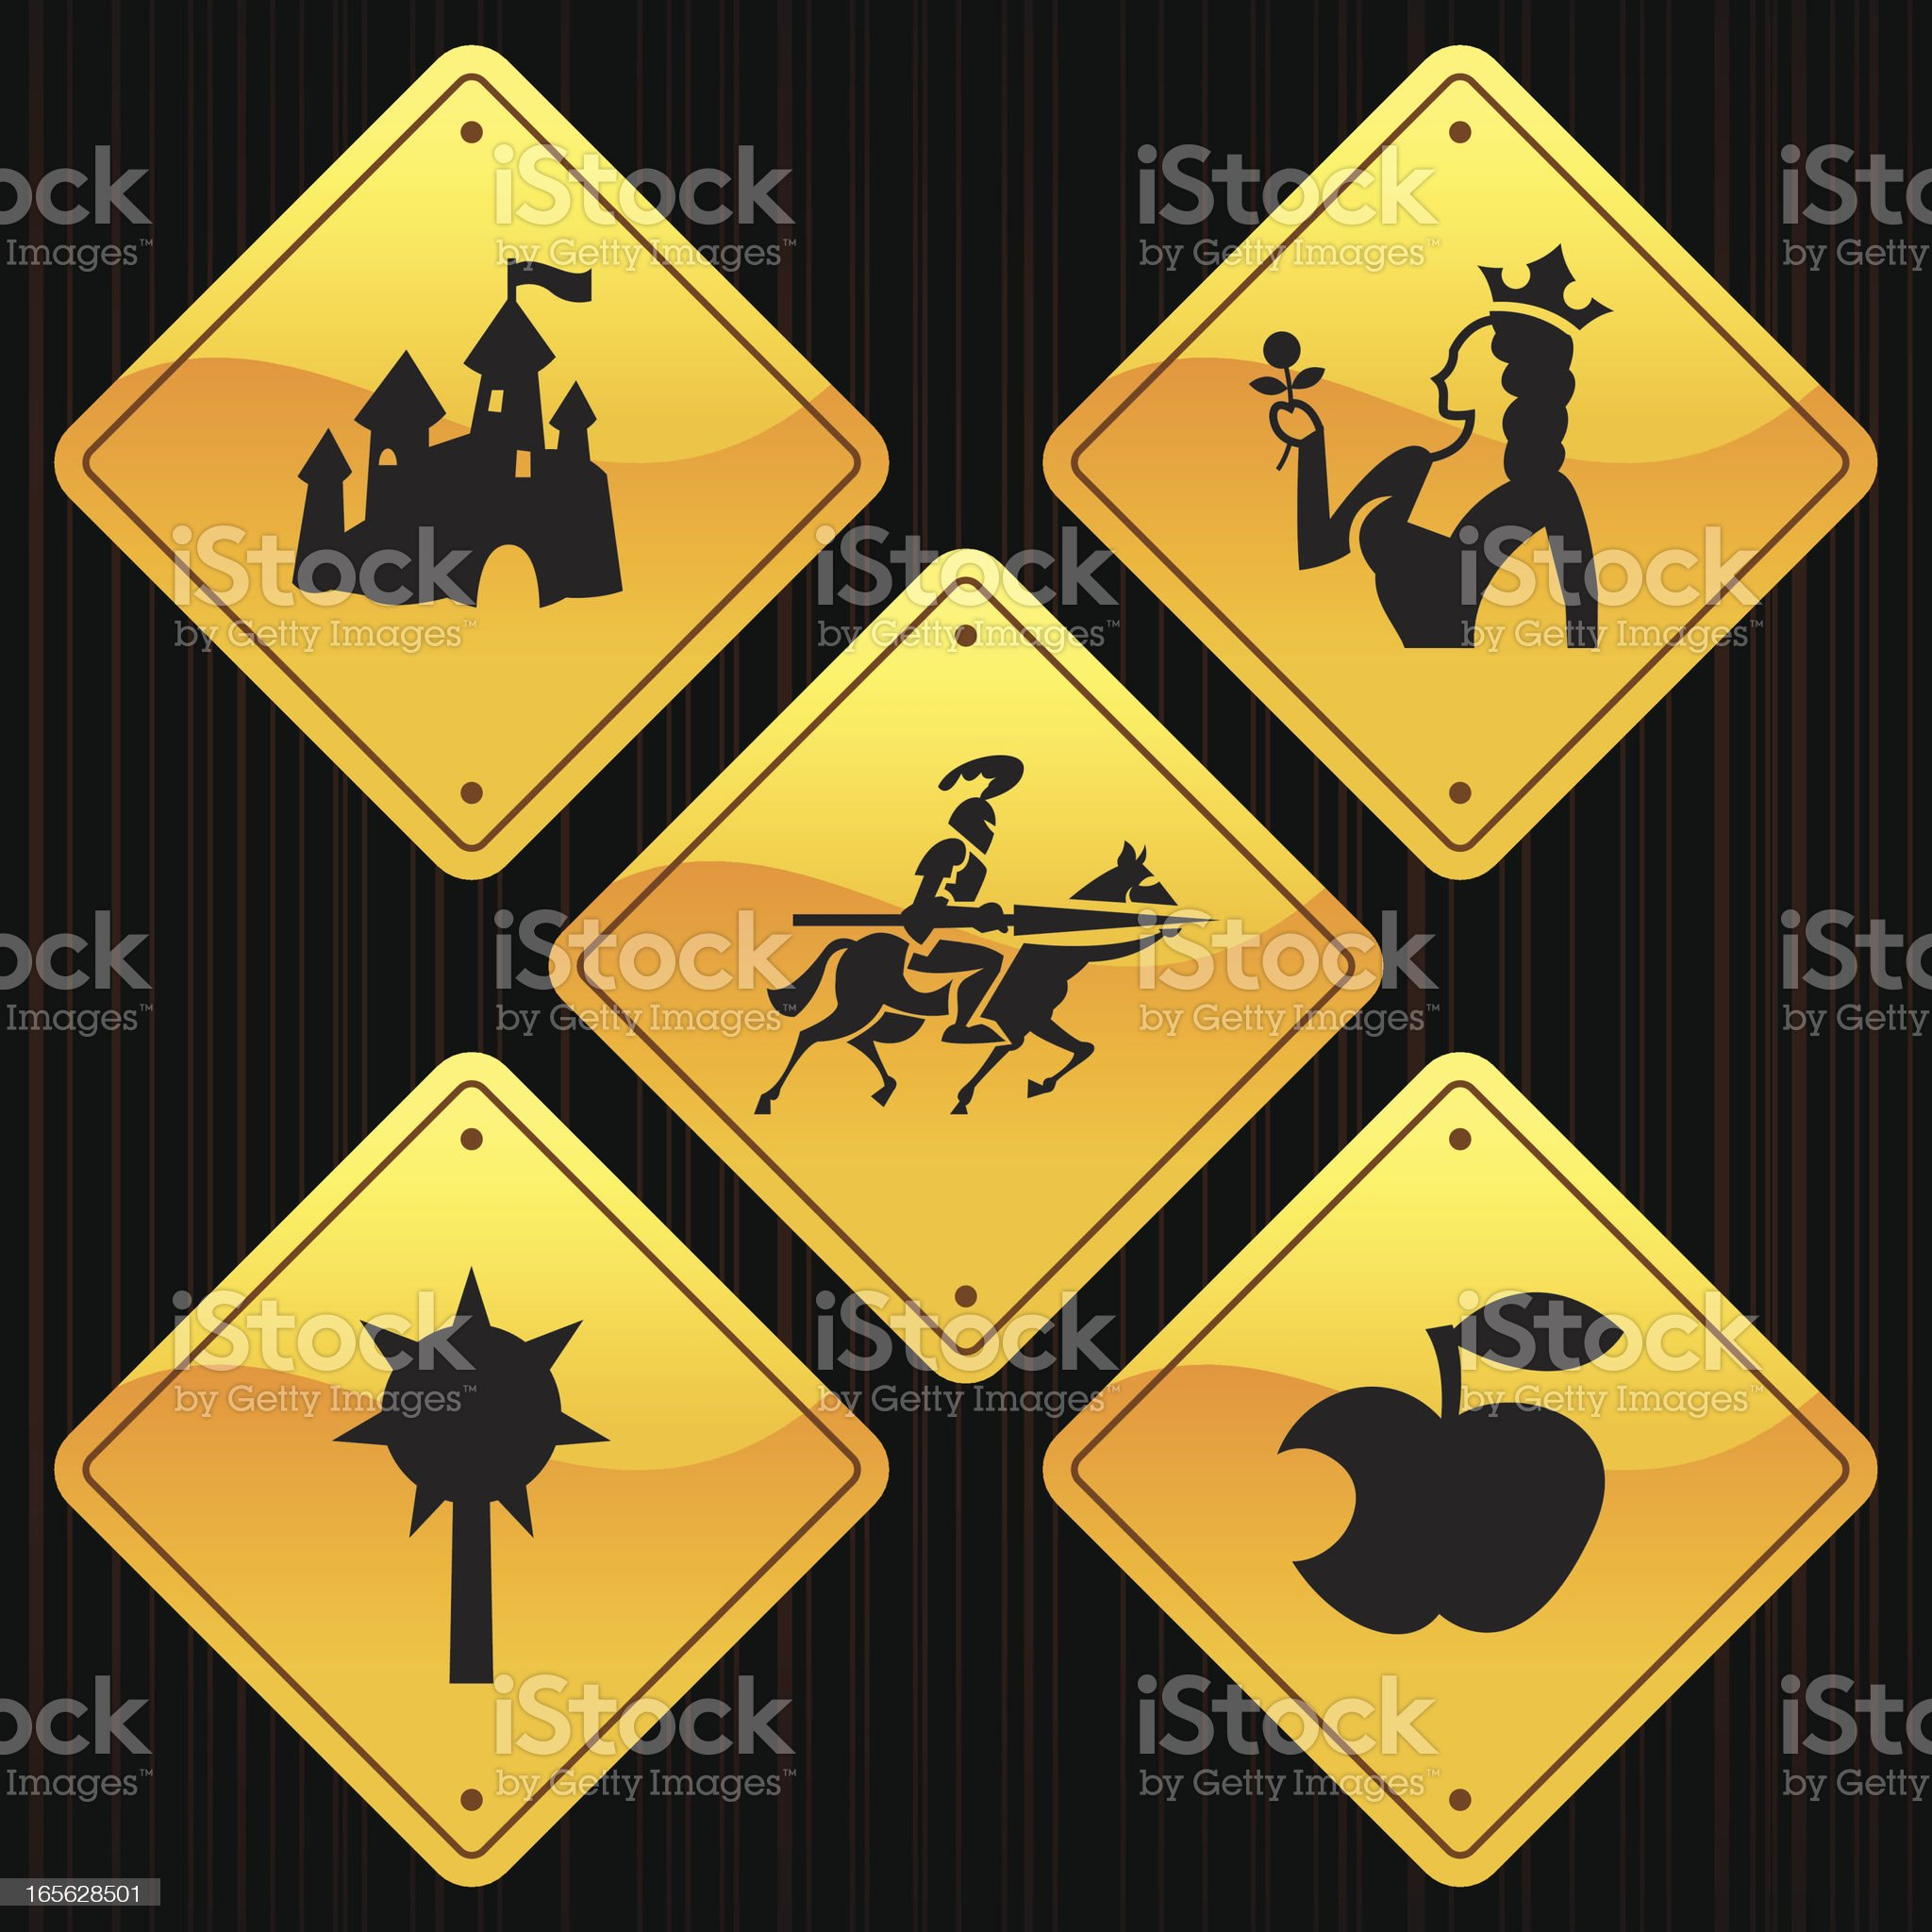 Yellow Signs - Medieval Fairytale royalty-free stock vector art